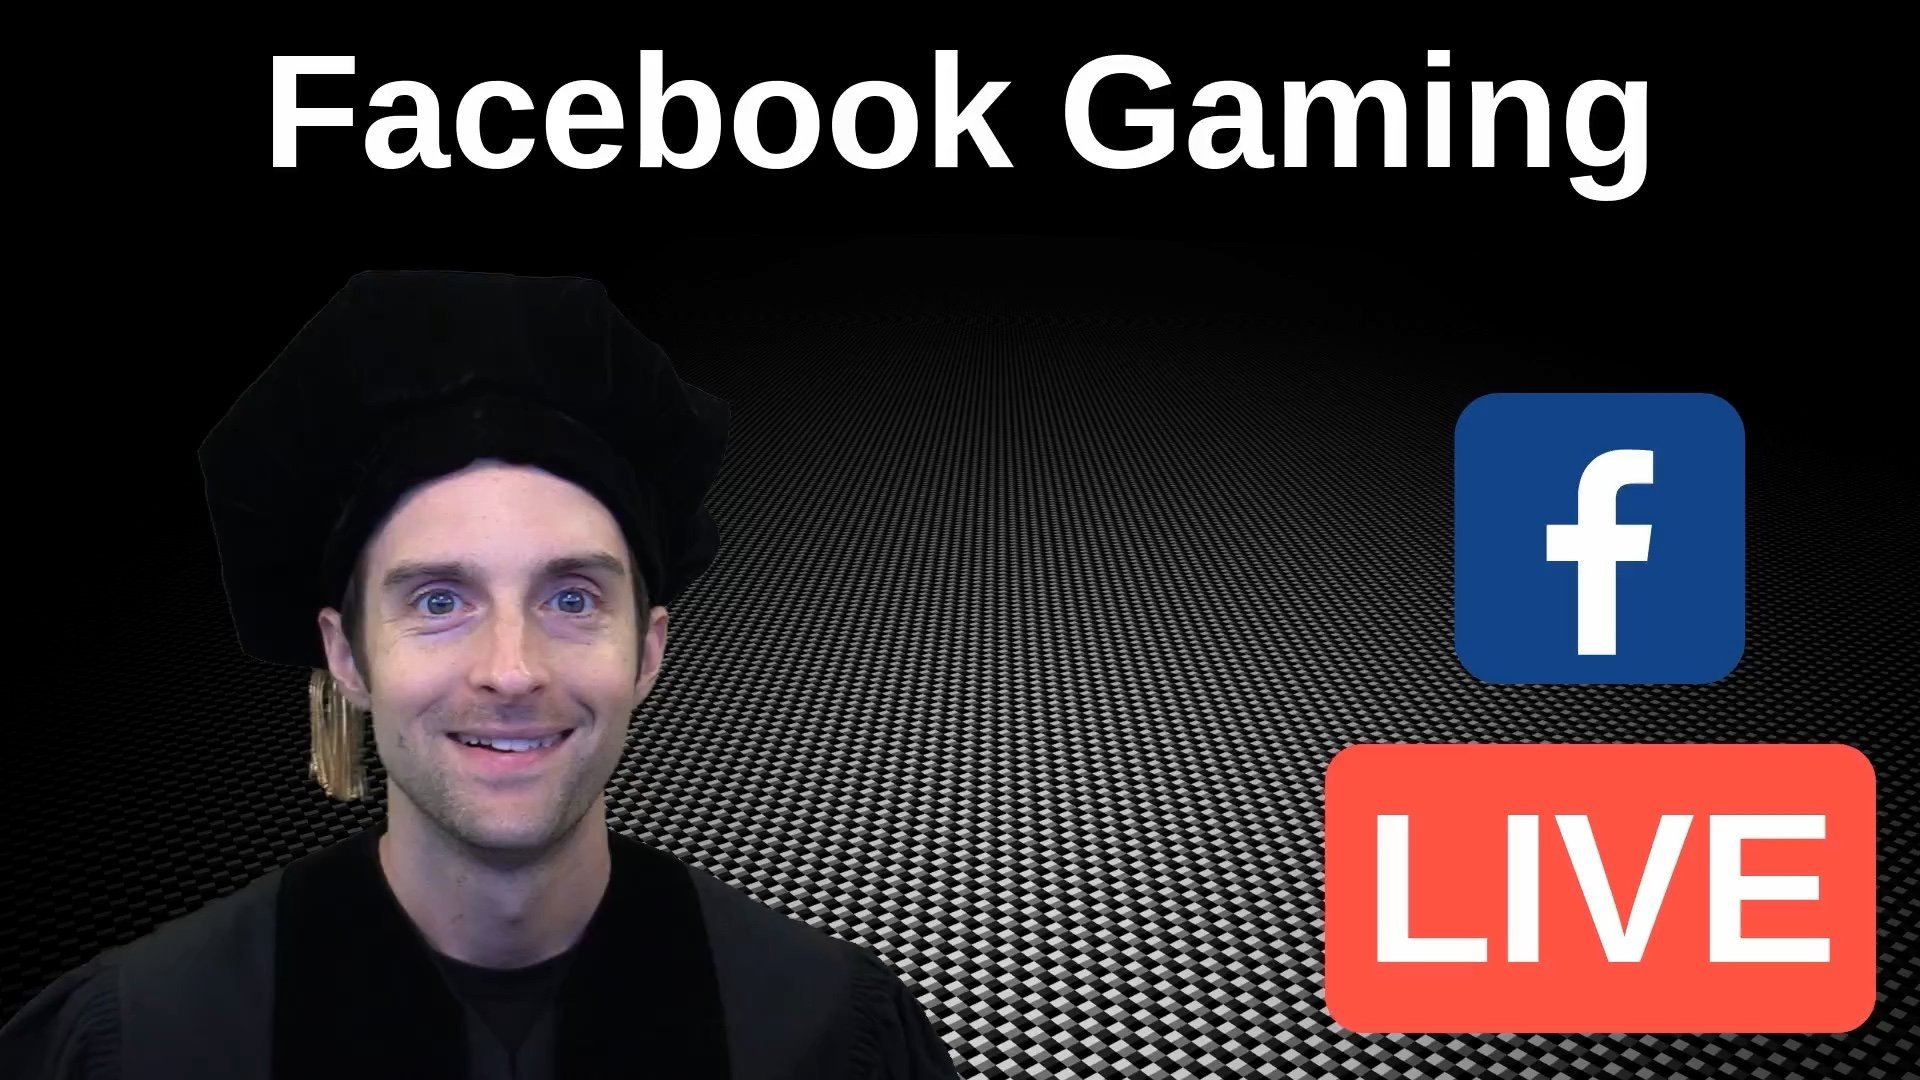 Facebook Gaming at FB.GG: Master Live Video Production, Studio Setup, and OBS Streaming!